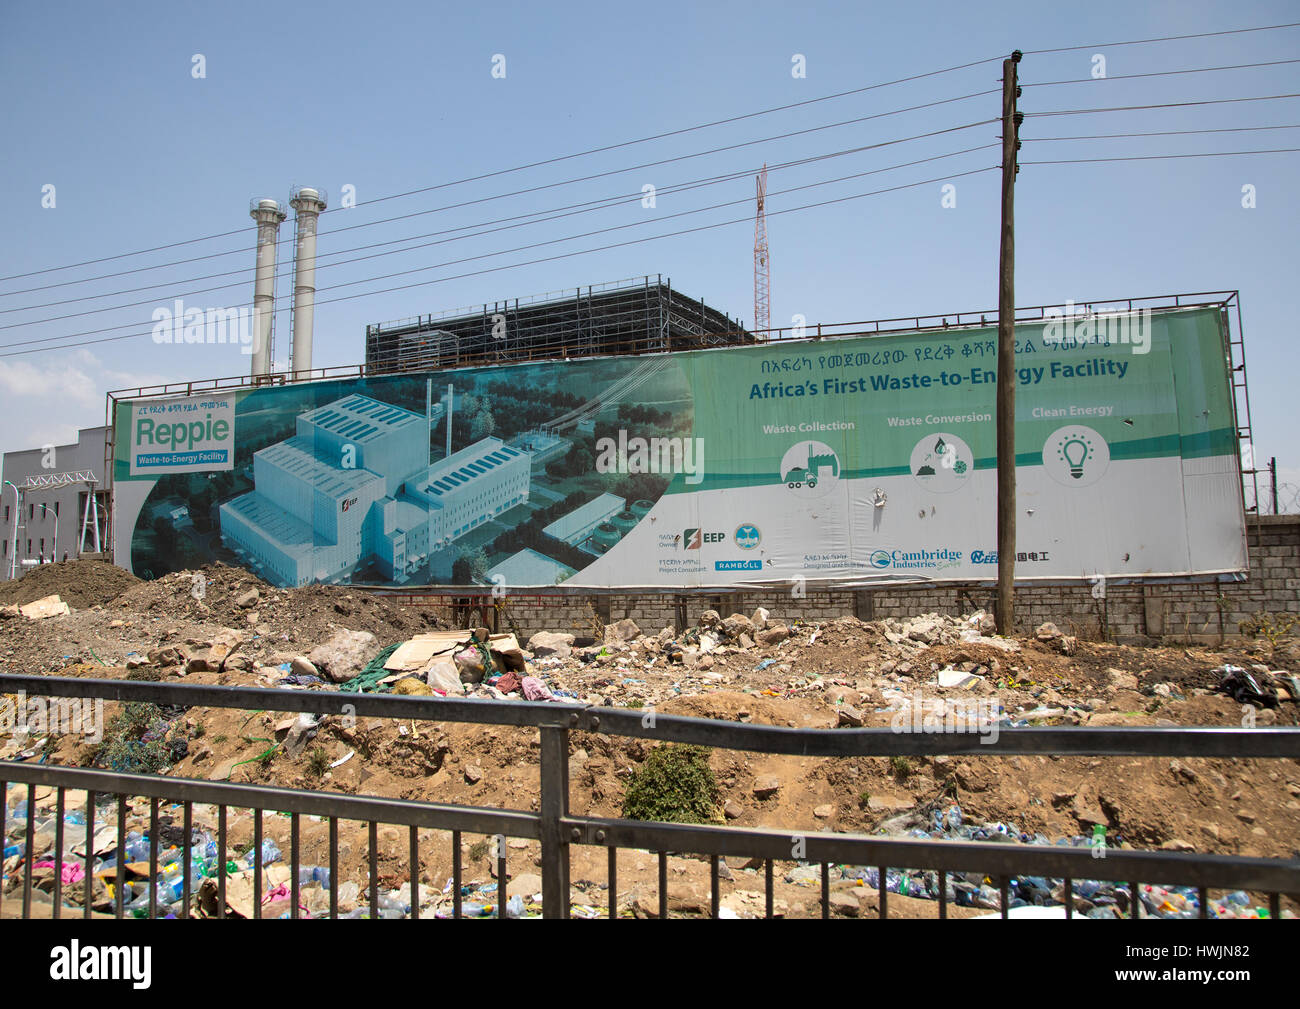 Biogas Recycling Stock Photos & Biogas Recycling Stock Images - Alamy